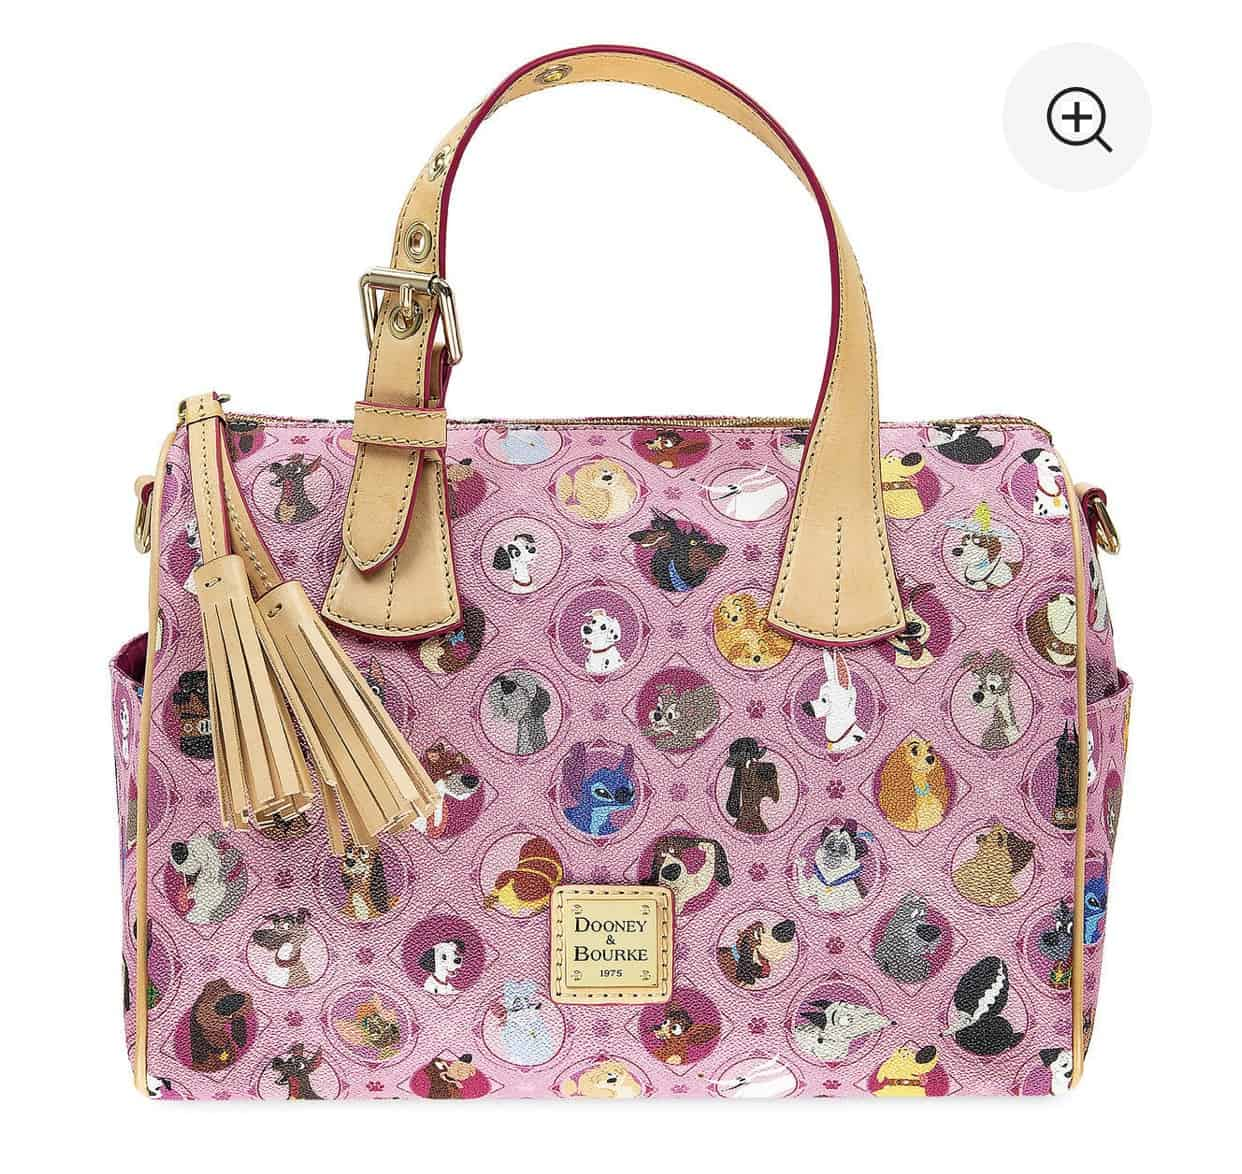 Dooney and Bourke Disney Bags 2